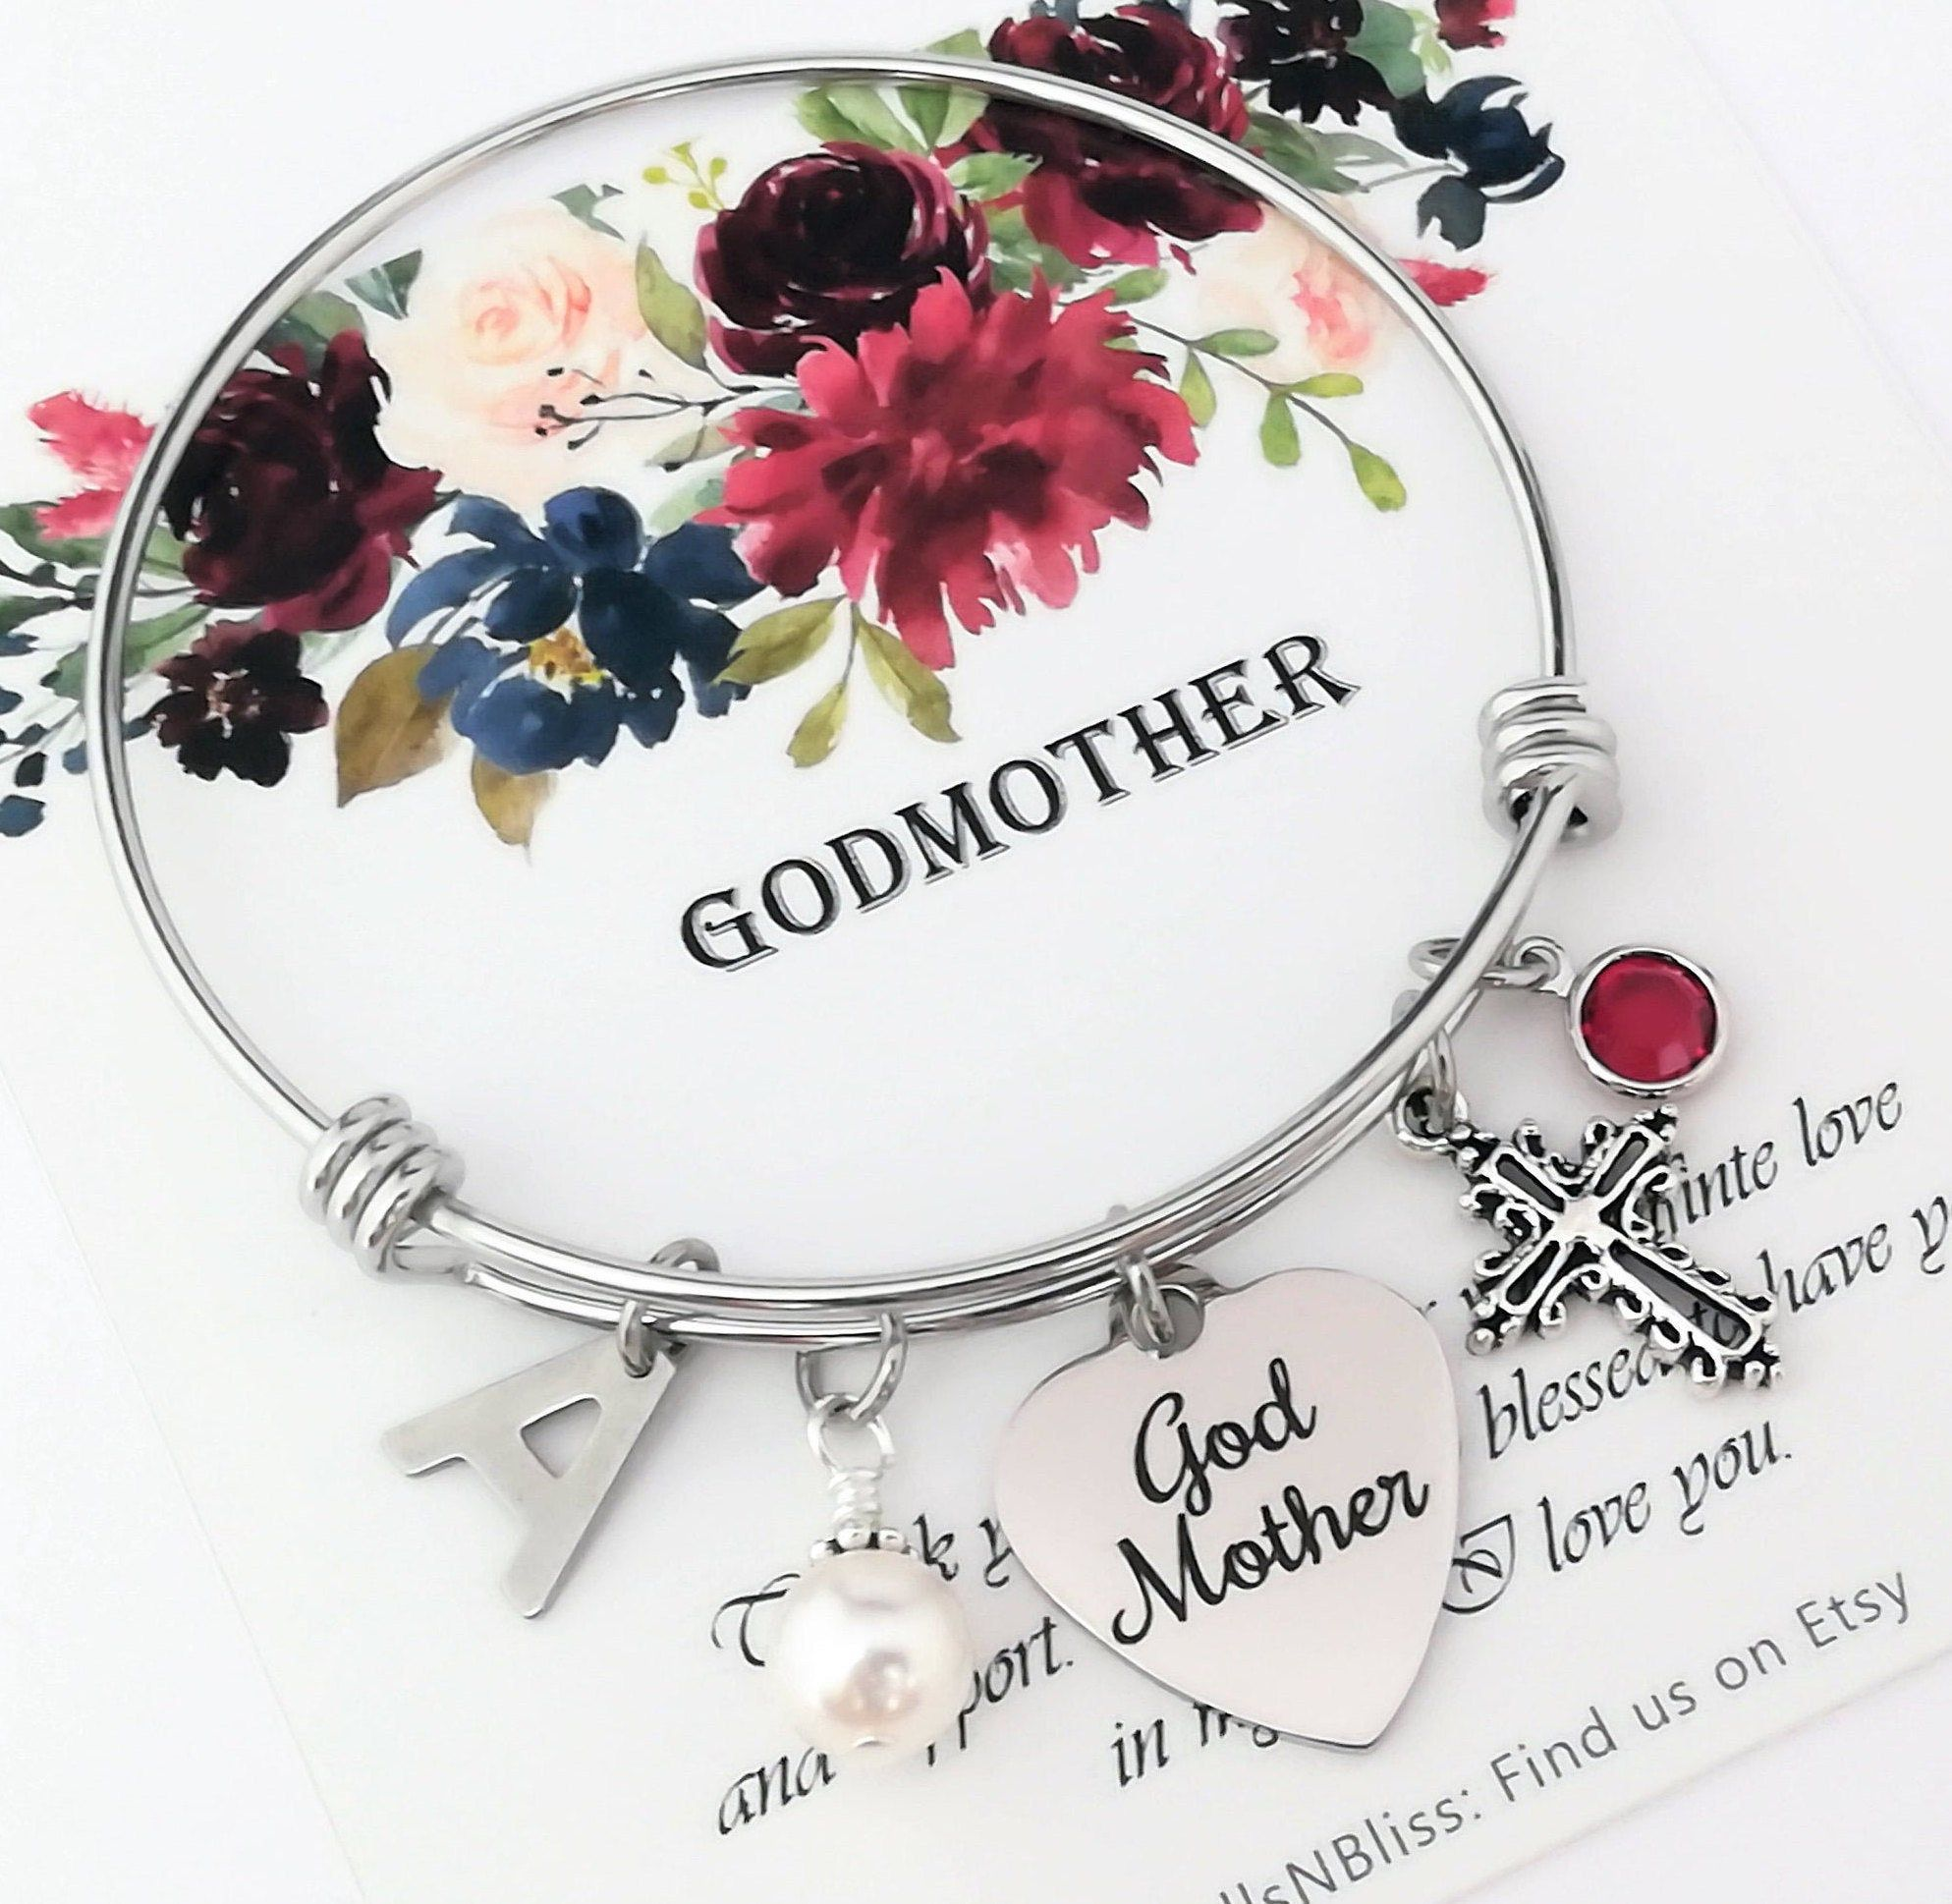 Godmother Gift Godmother Proposal Will You Be My Godmother